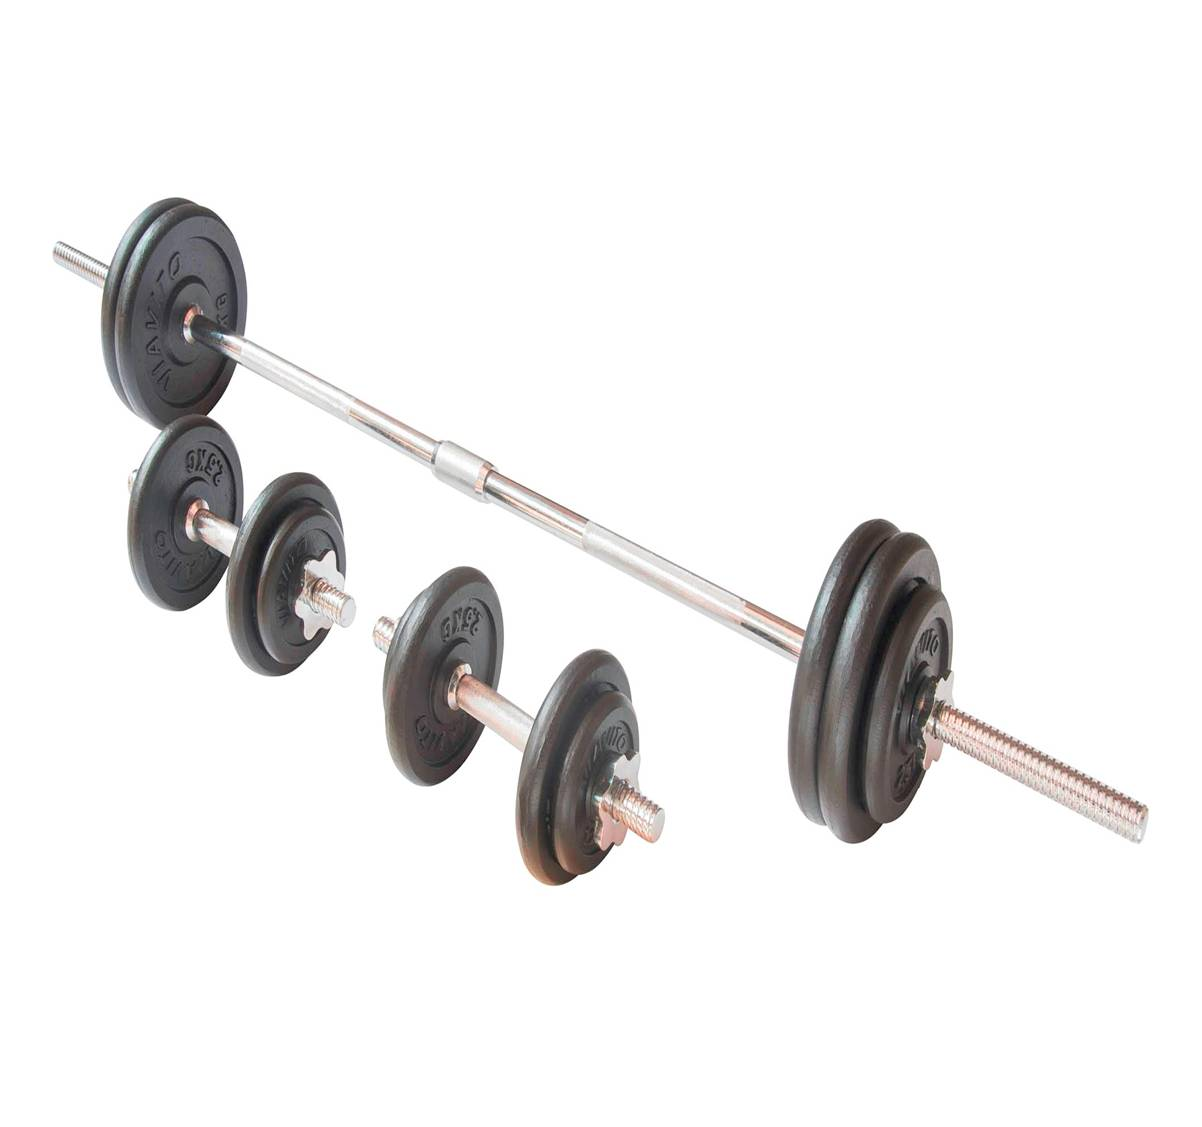 barbell set black bs09 50kg sports and games ltd